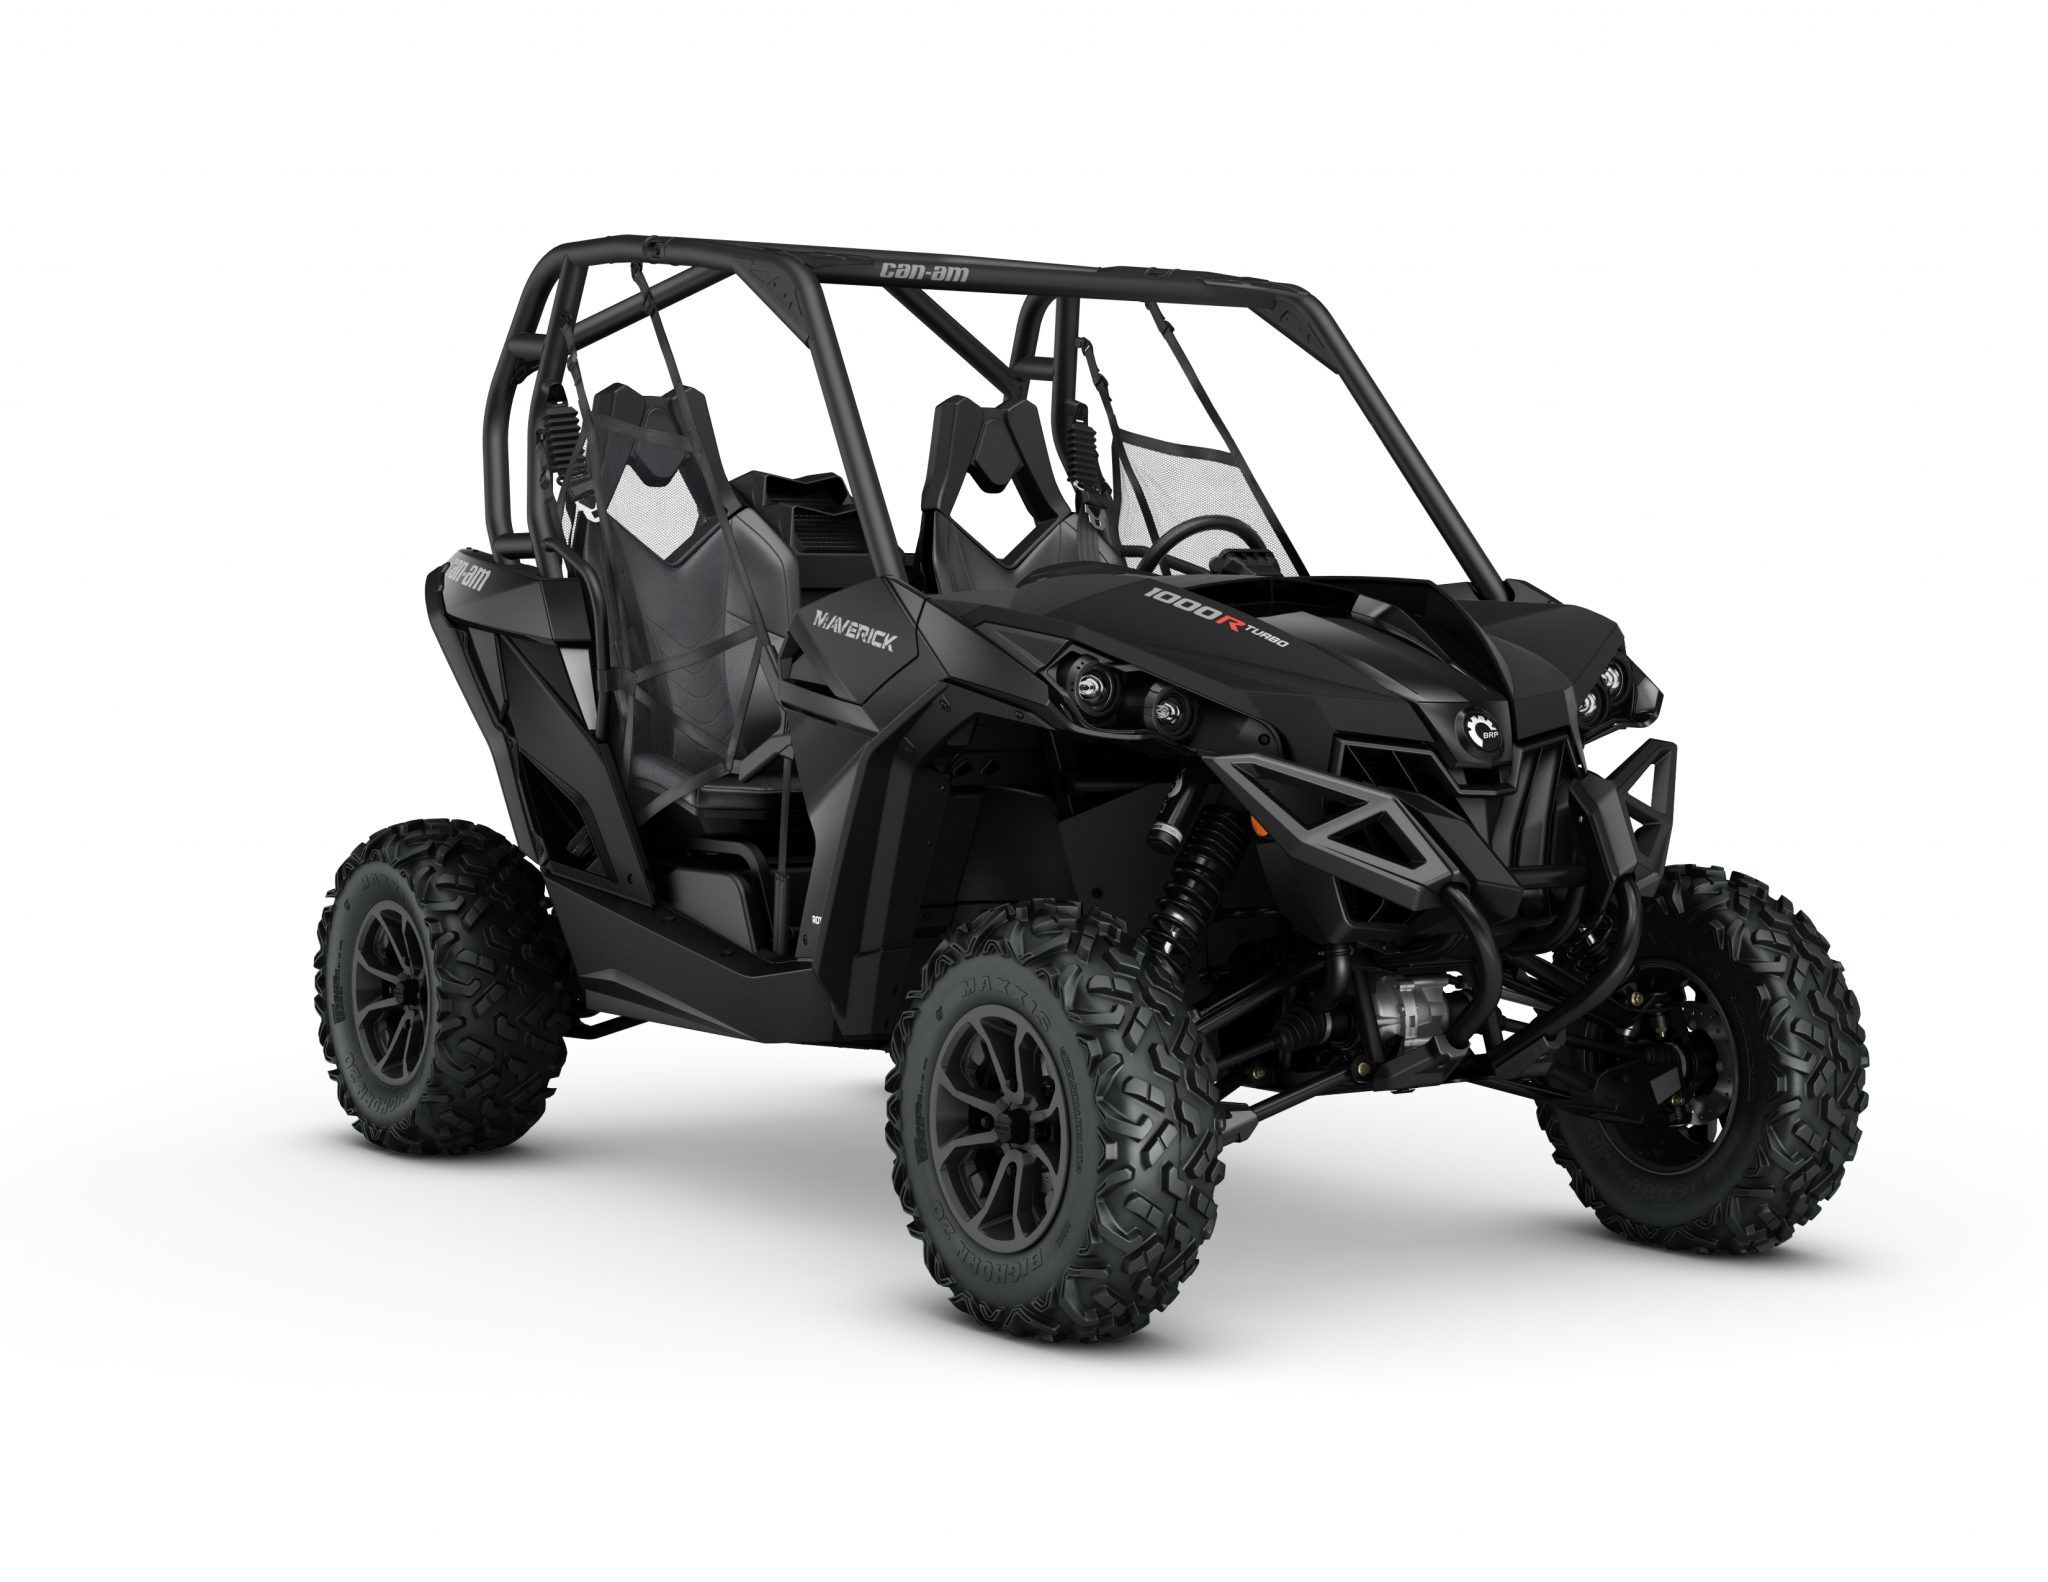 2017 Maverick 1000R TURBO Triple Black 3 4 front